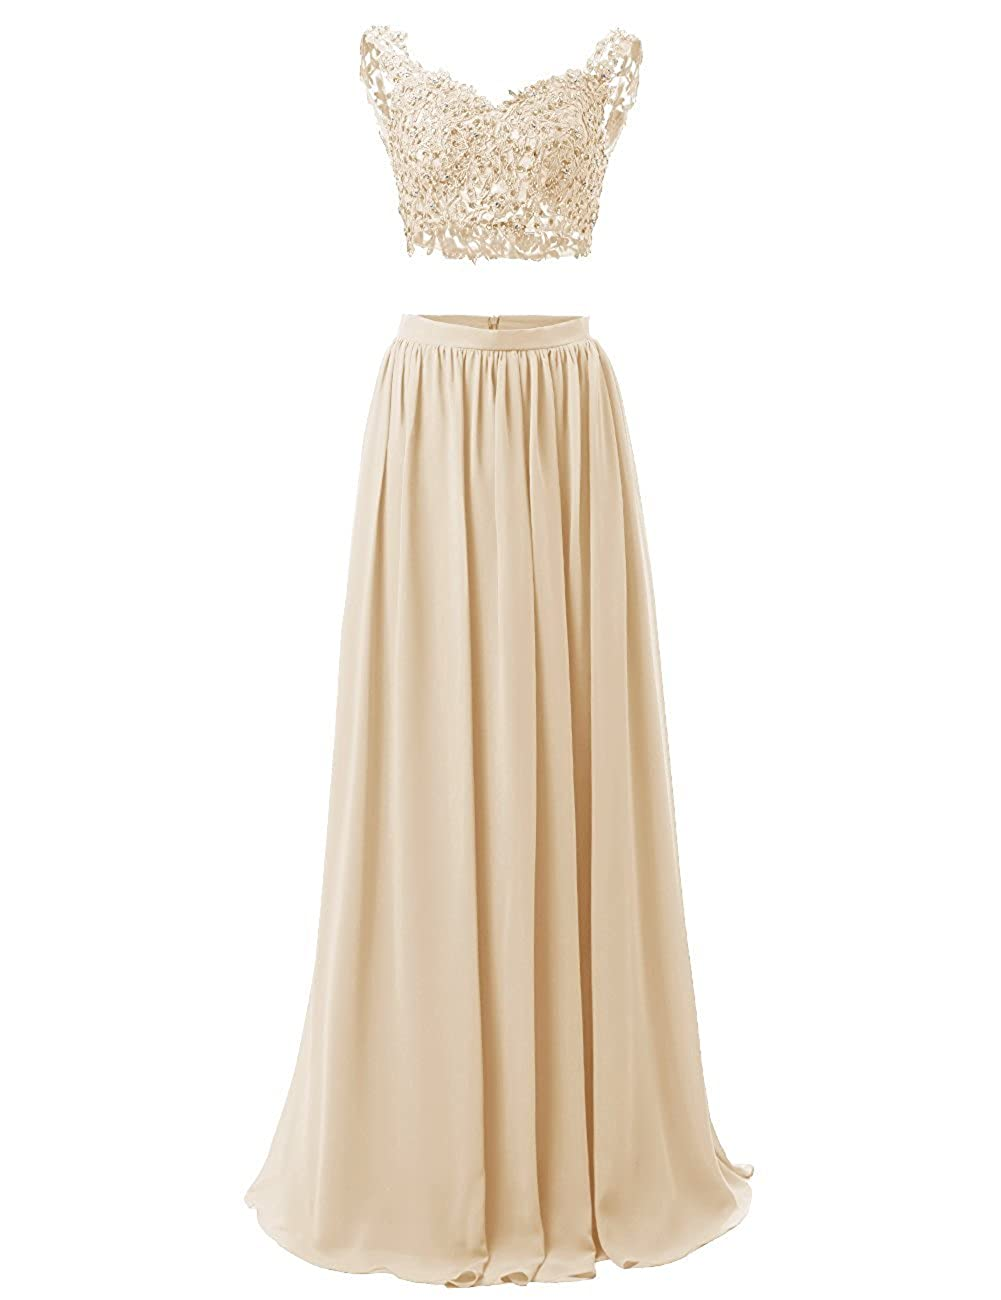 Champagne M Bridal Women's Sequines Appliques 2 Piece VNeck Long Prom Homecoming Dress